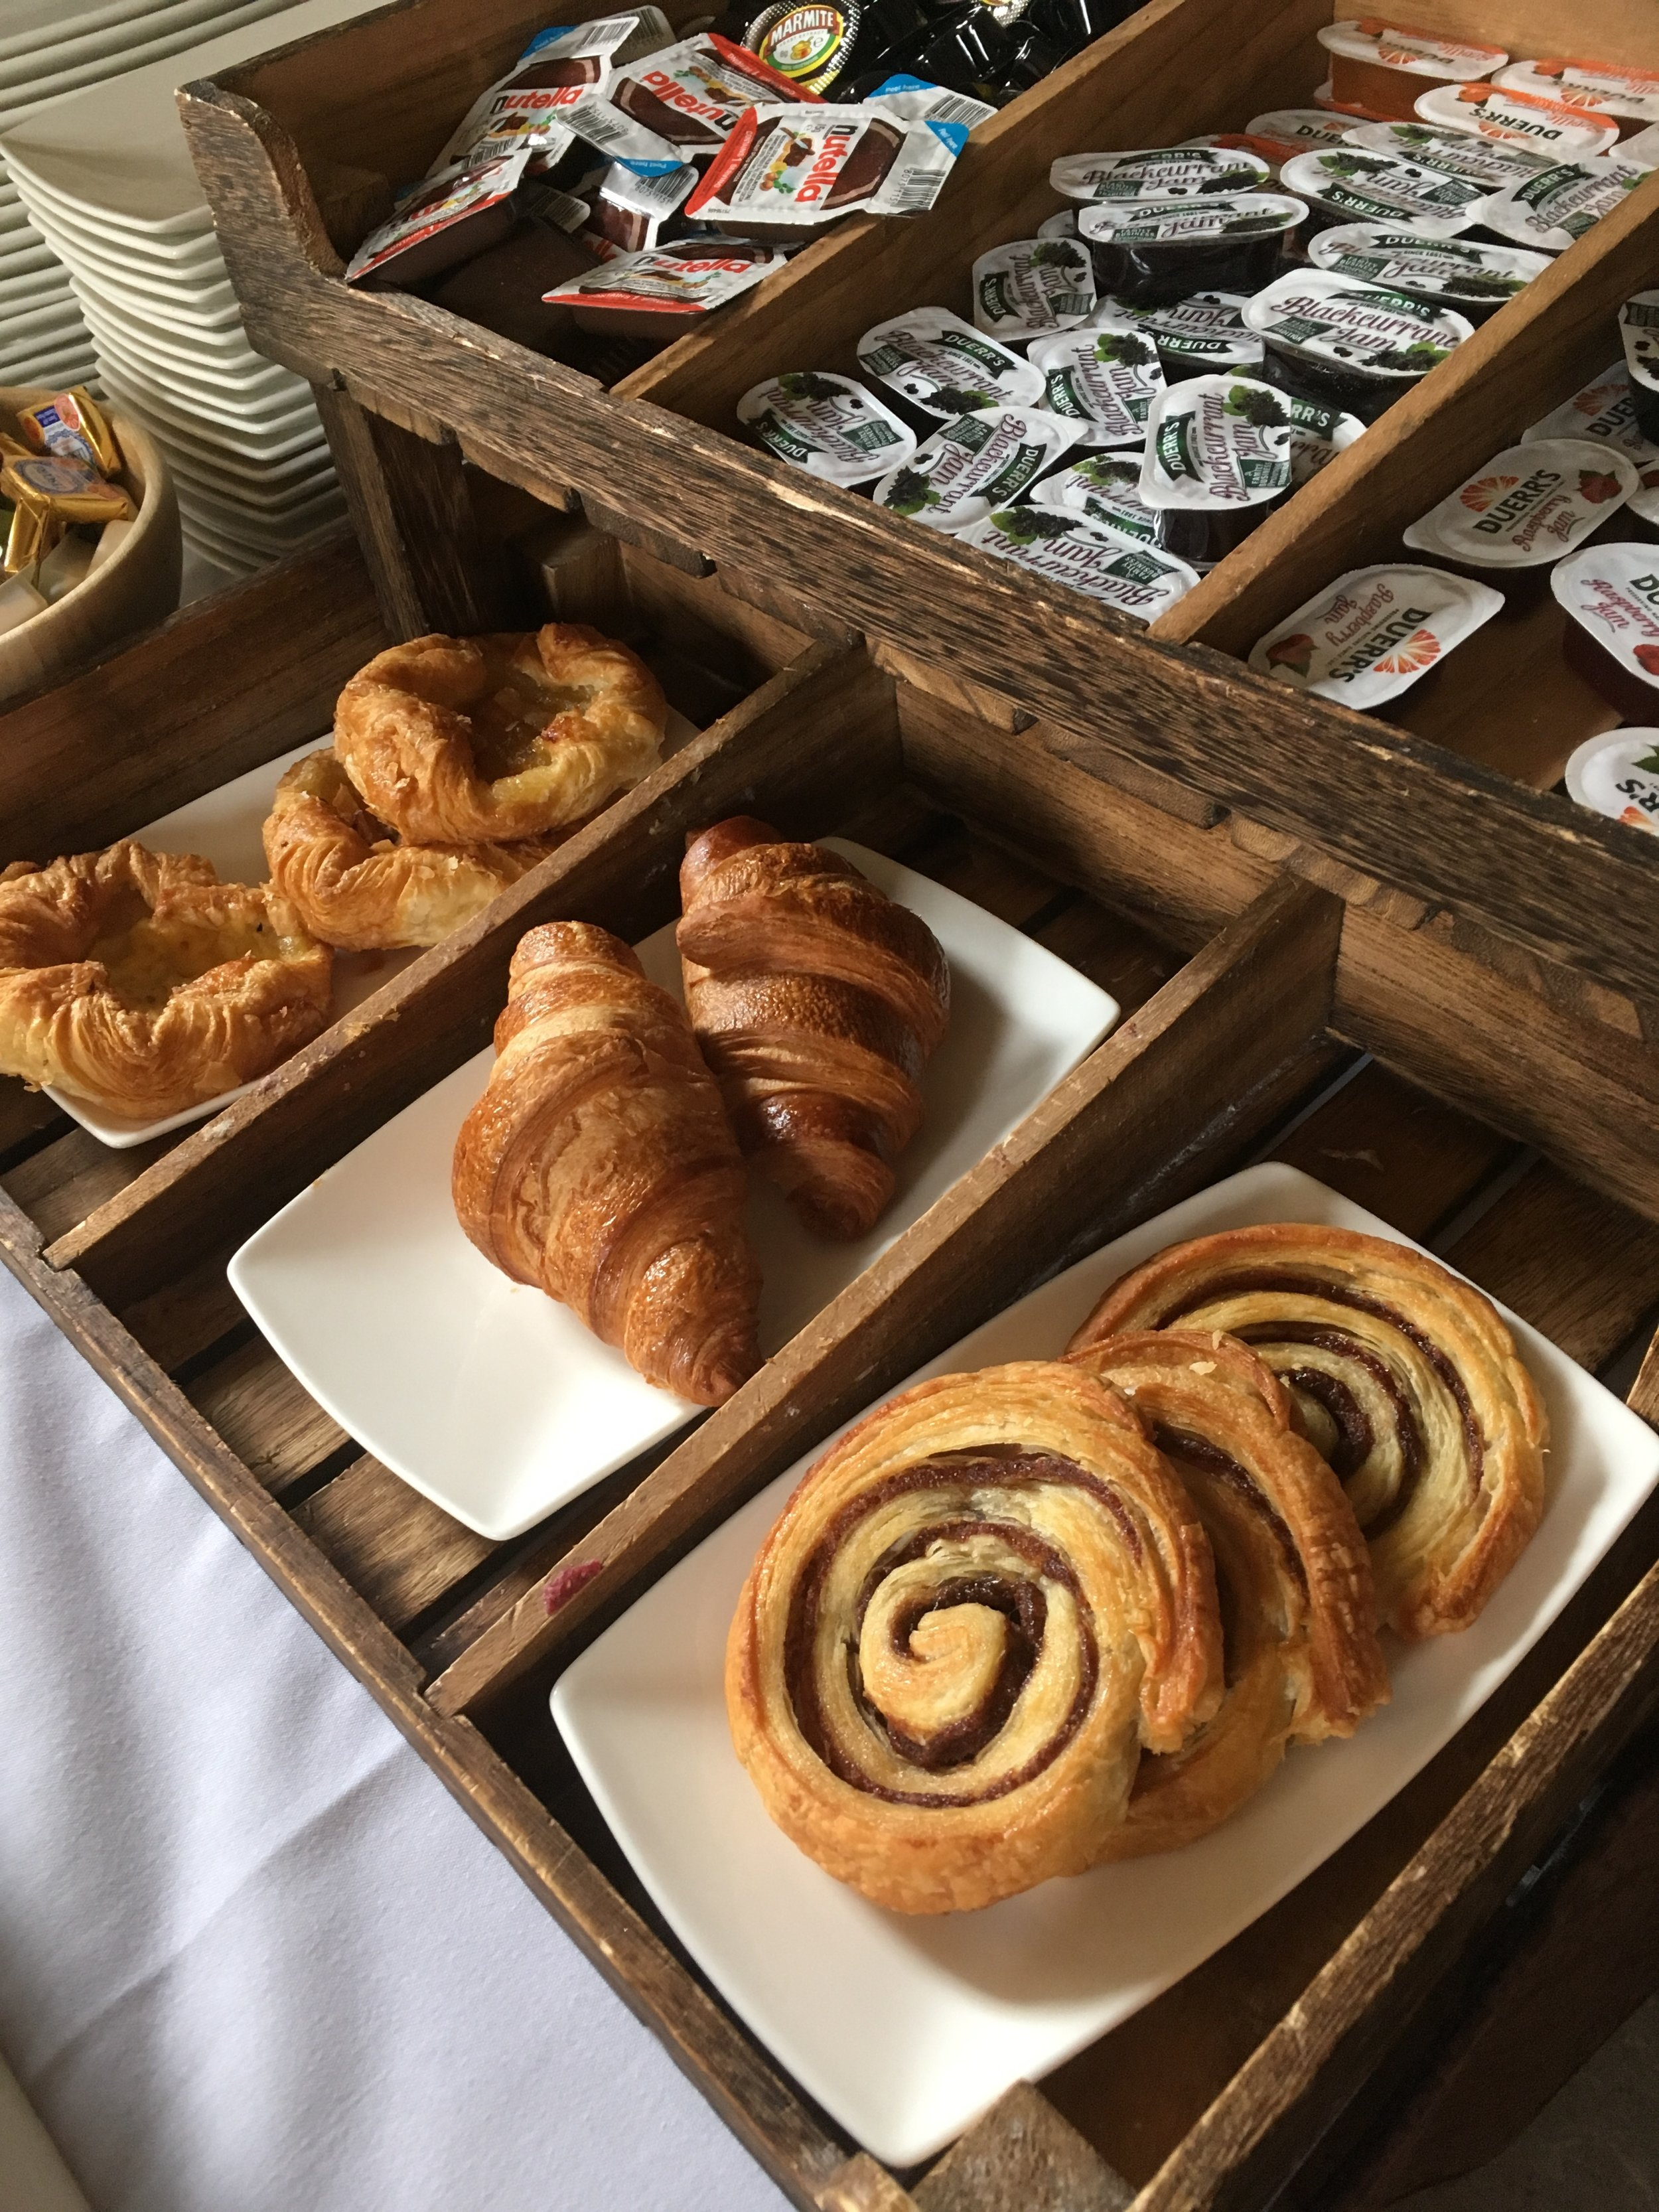 Chicheley hall breakfast pastries